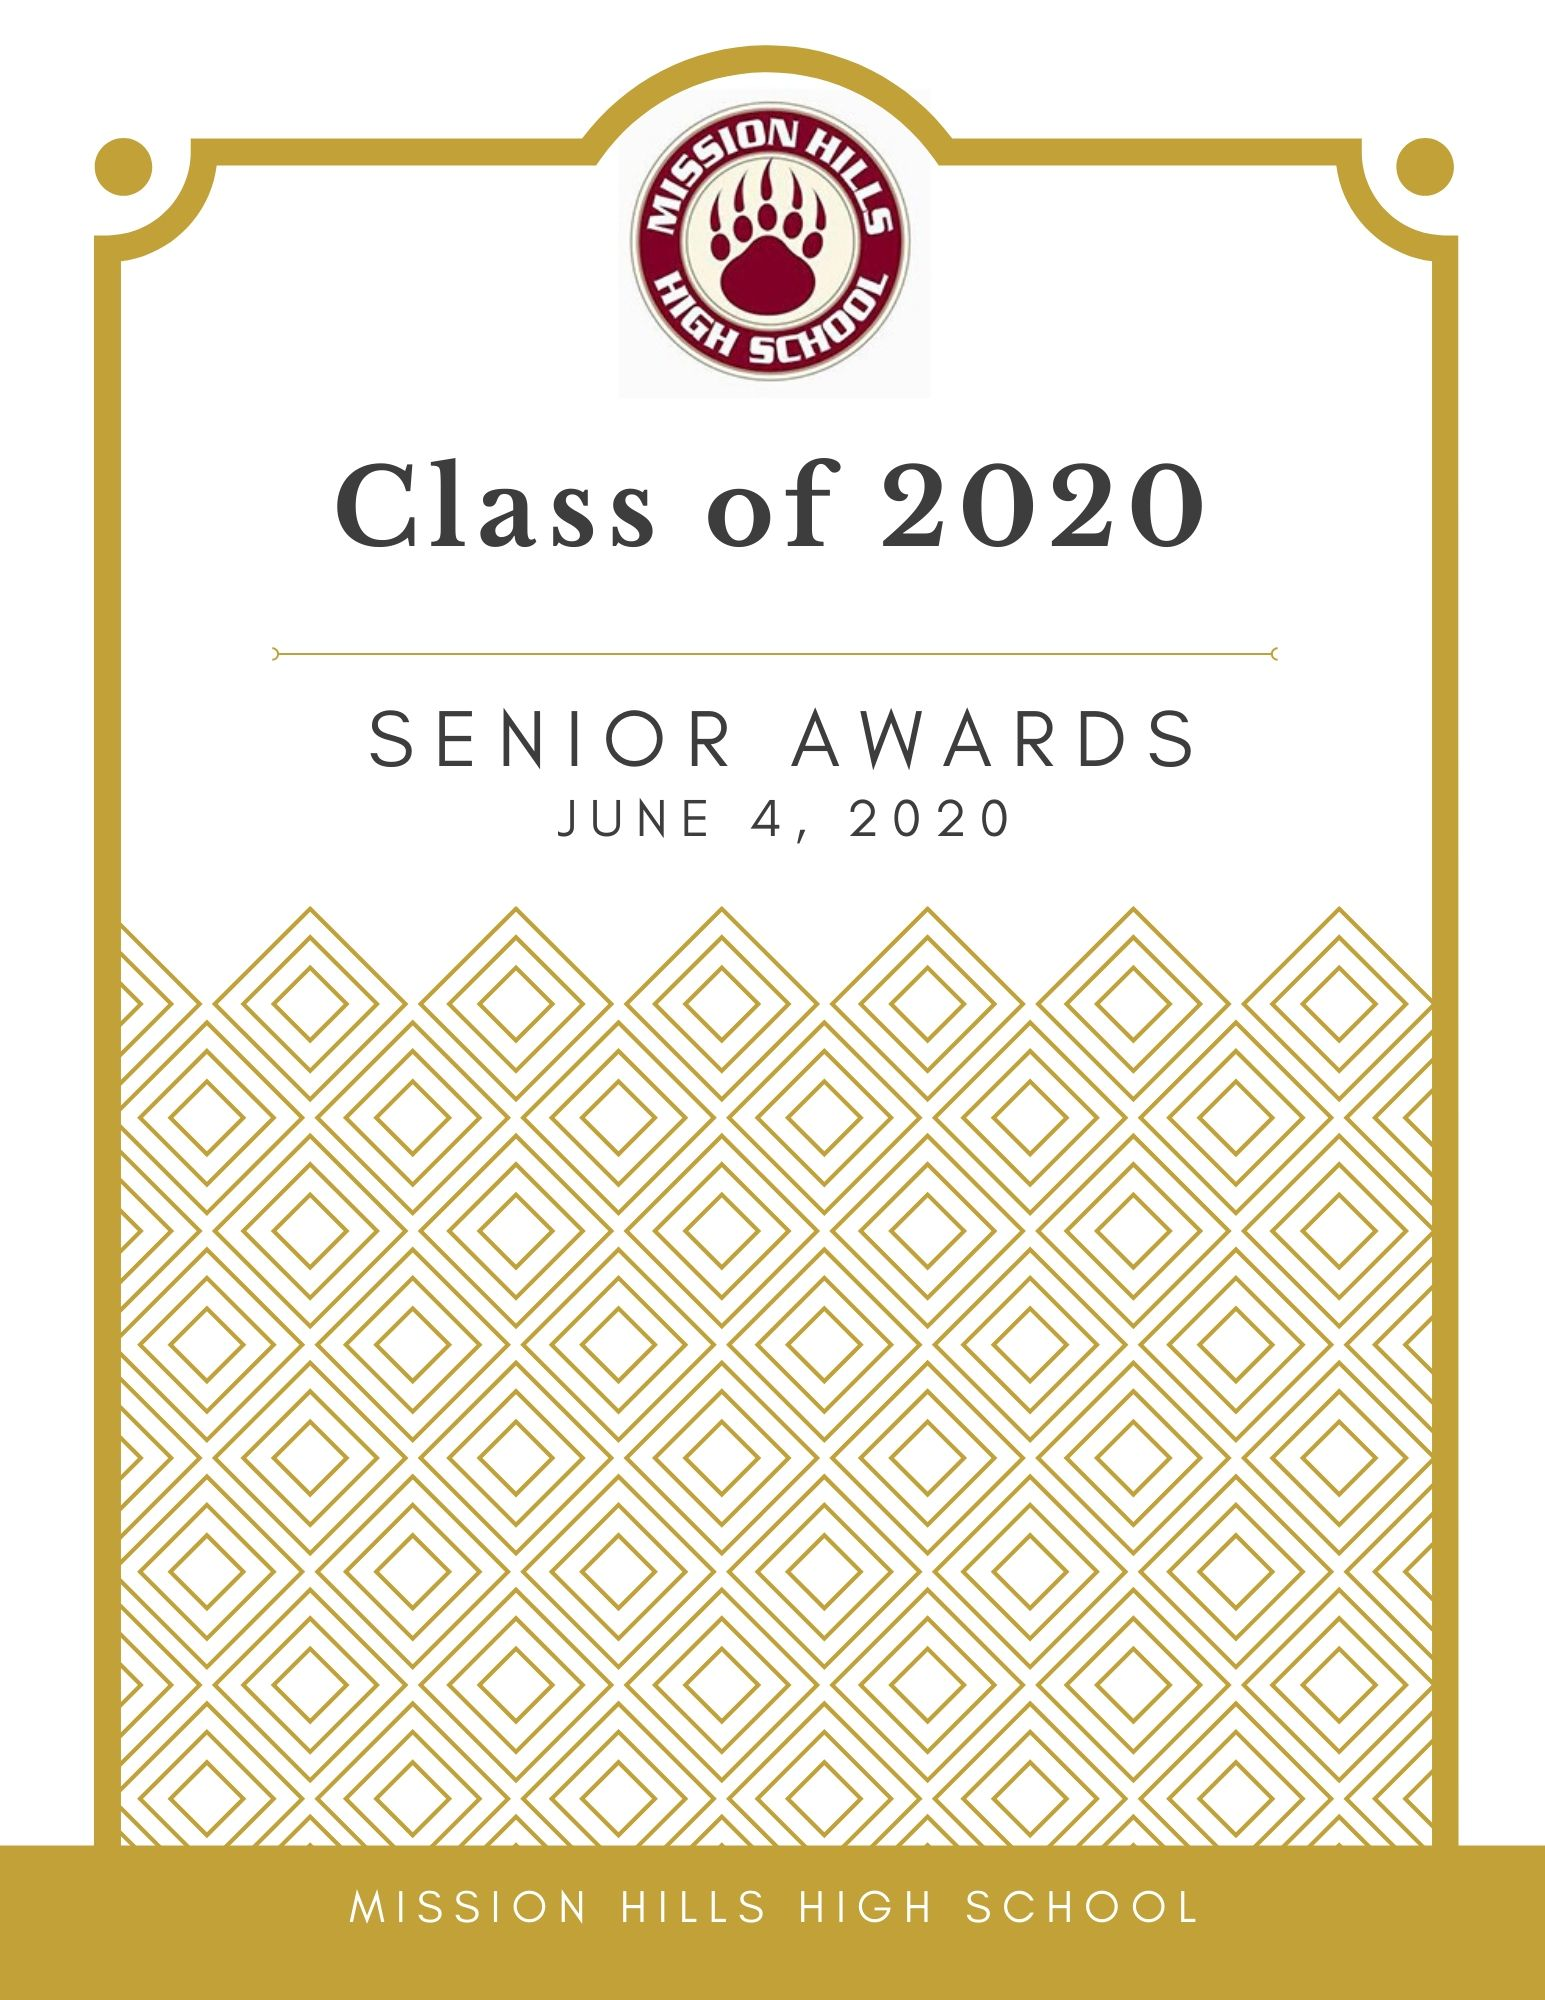 Senior Awards 2020 Program